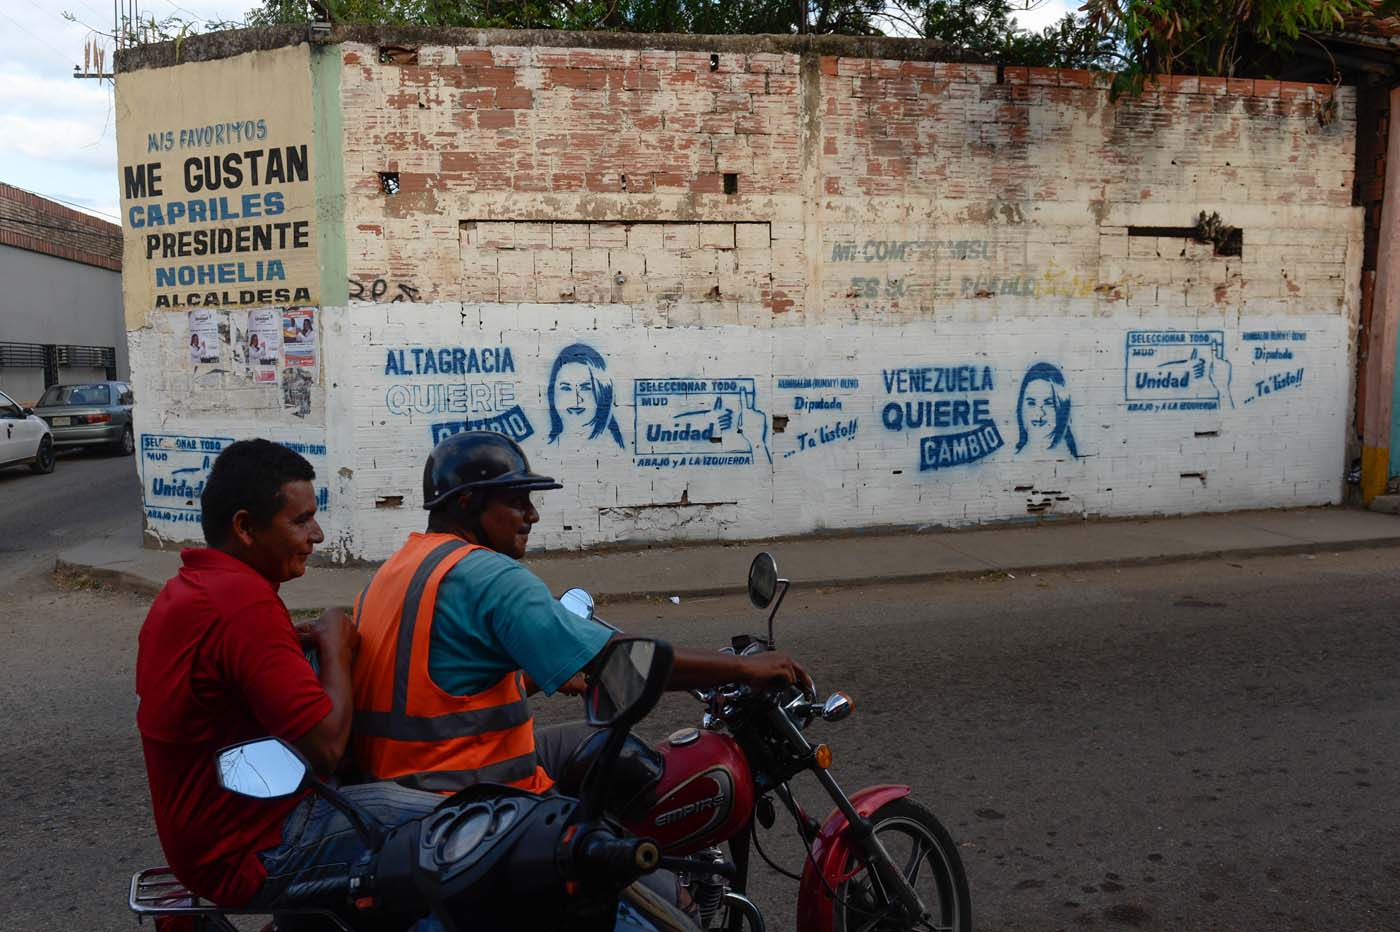 """A motorcyclist passes   by a graffiti depicting a Venezuelan opposition candidate for the upcoming legislative elections Rumualda Olivo in the Altagracia de Orituco town in Guarico state, Venezuela, on November 26, 2015. An opposition candidate in Venezuela's upcoming legislative elections was shot dead during an event Wednesday. """"Luis Manuel Diaz, local leader of the Democratic Action party in Altagracia de Orituco (Guarico state) has just been shot dead,"""" the party's chairman Henry Ramos Allup said on Twitter. AFP PHOTO/ FEDERICO PARRA / AFP / FEDERICO PARRA"""